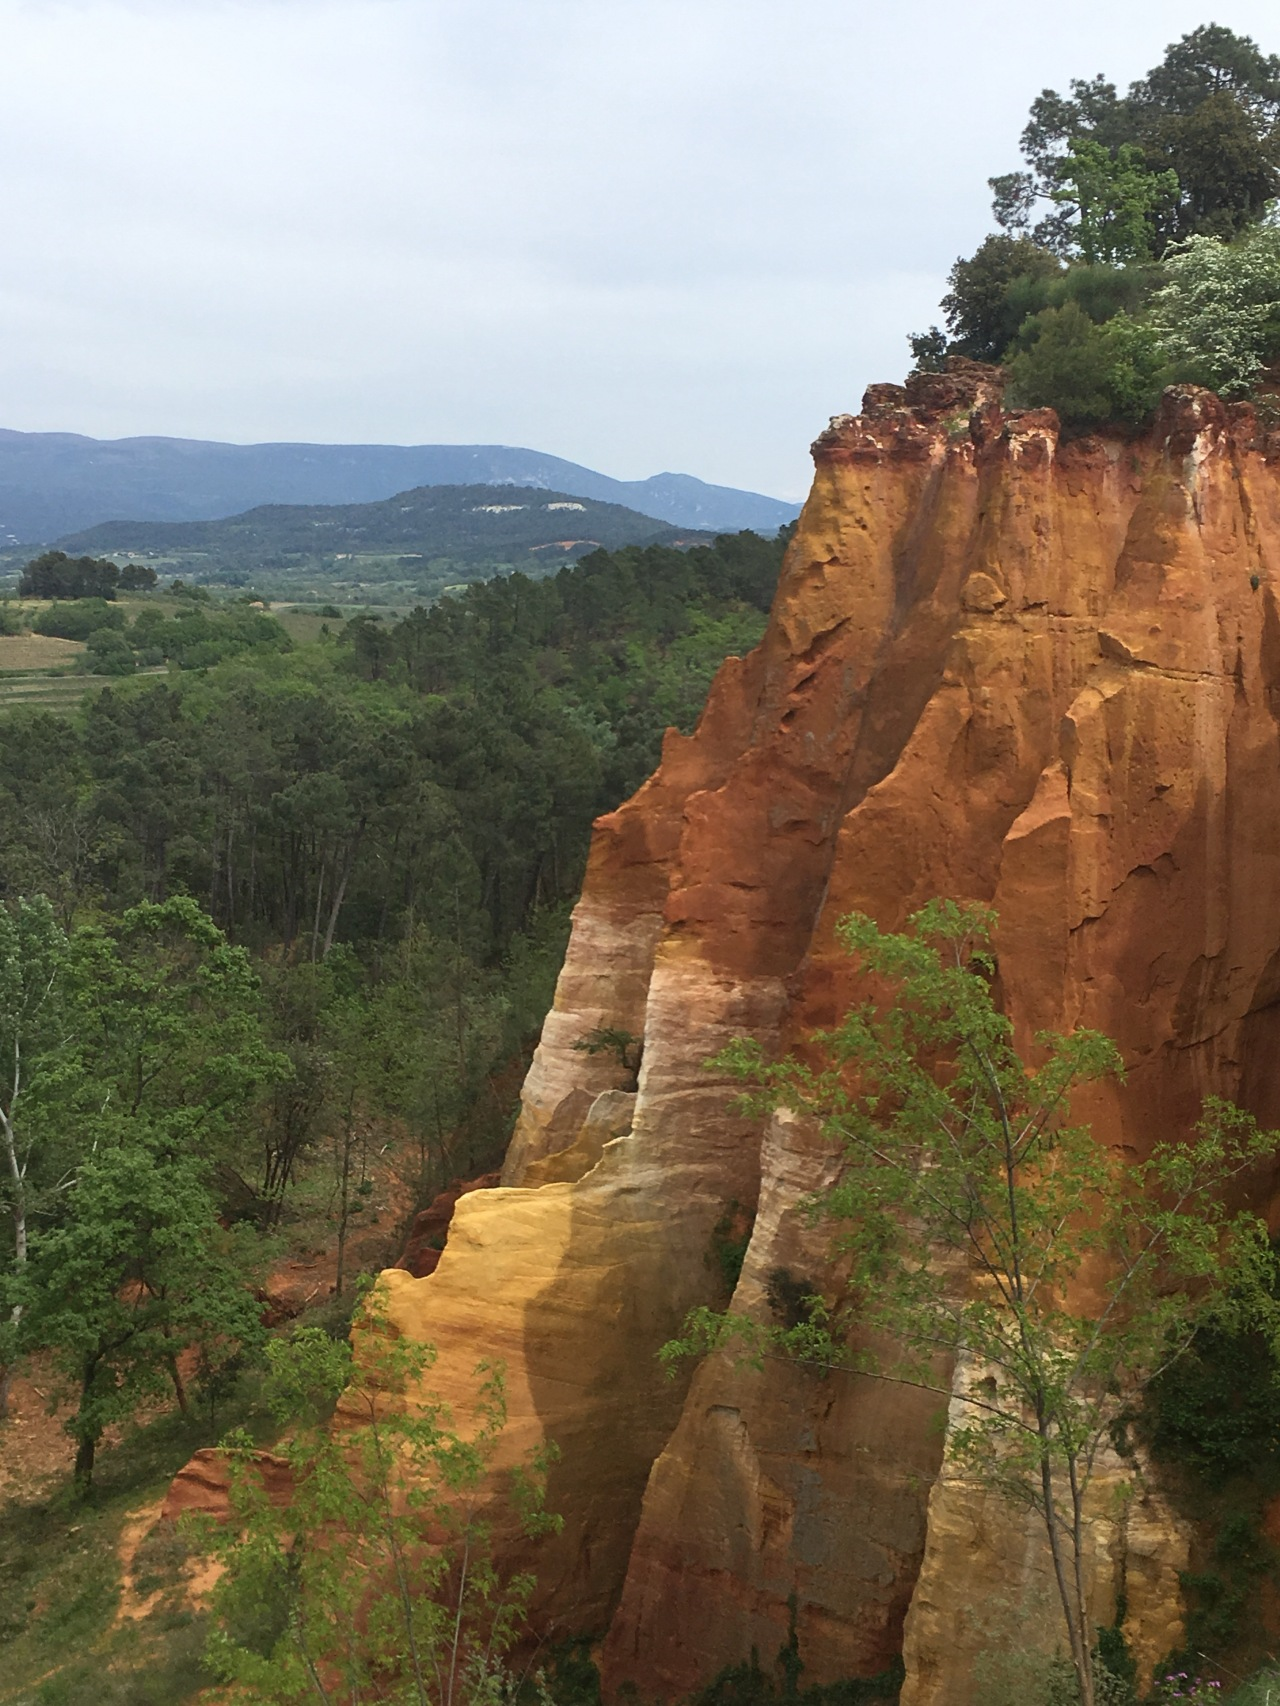 The Legend of Roussillon – a tale of illicit love and a tragic end!